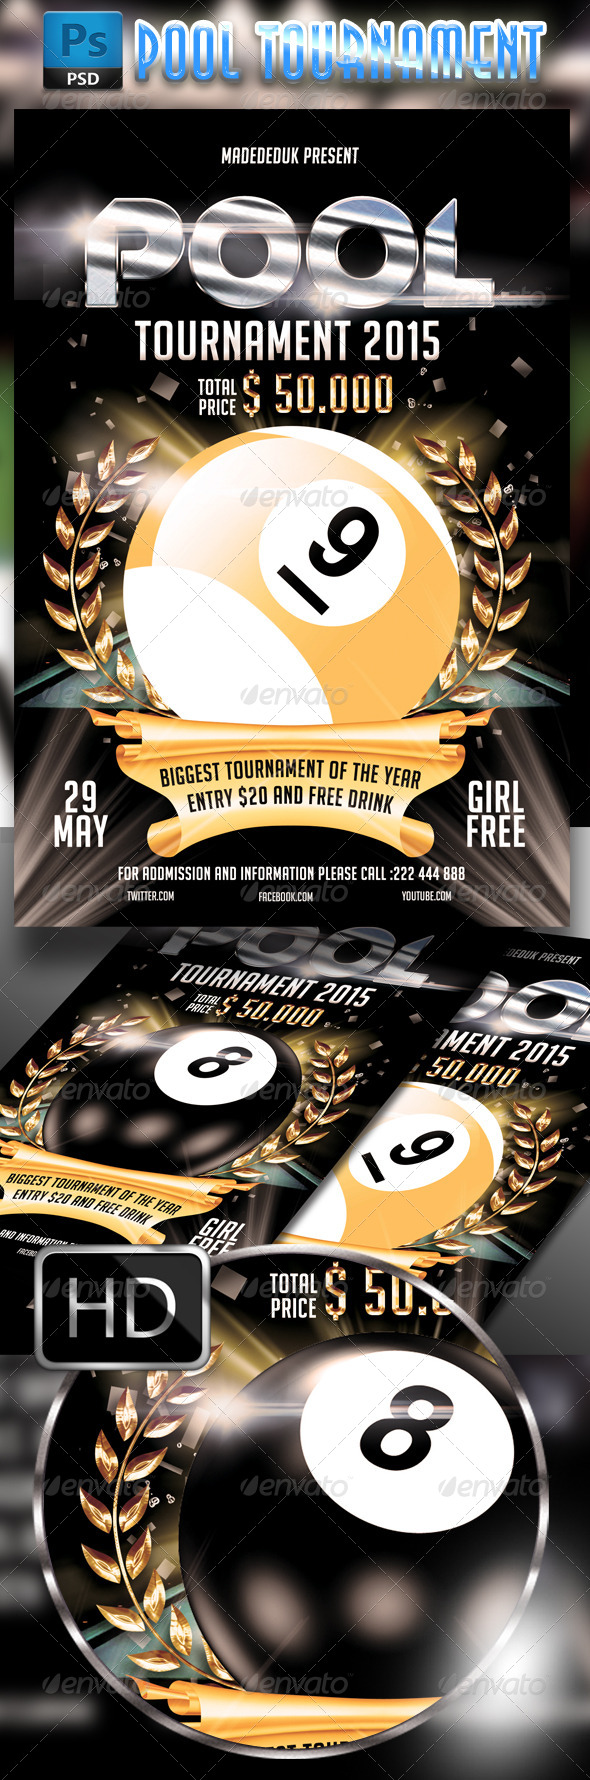 GraphicRiver Pool Tournament 2015 Flyer Template 7823054